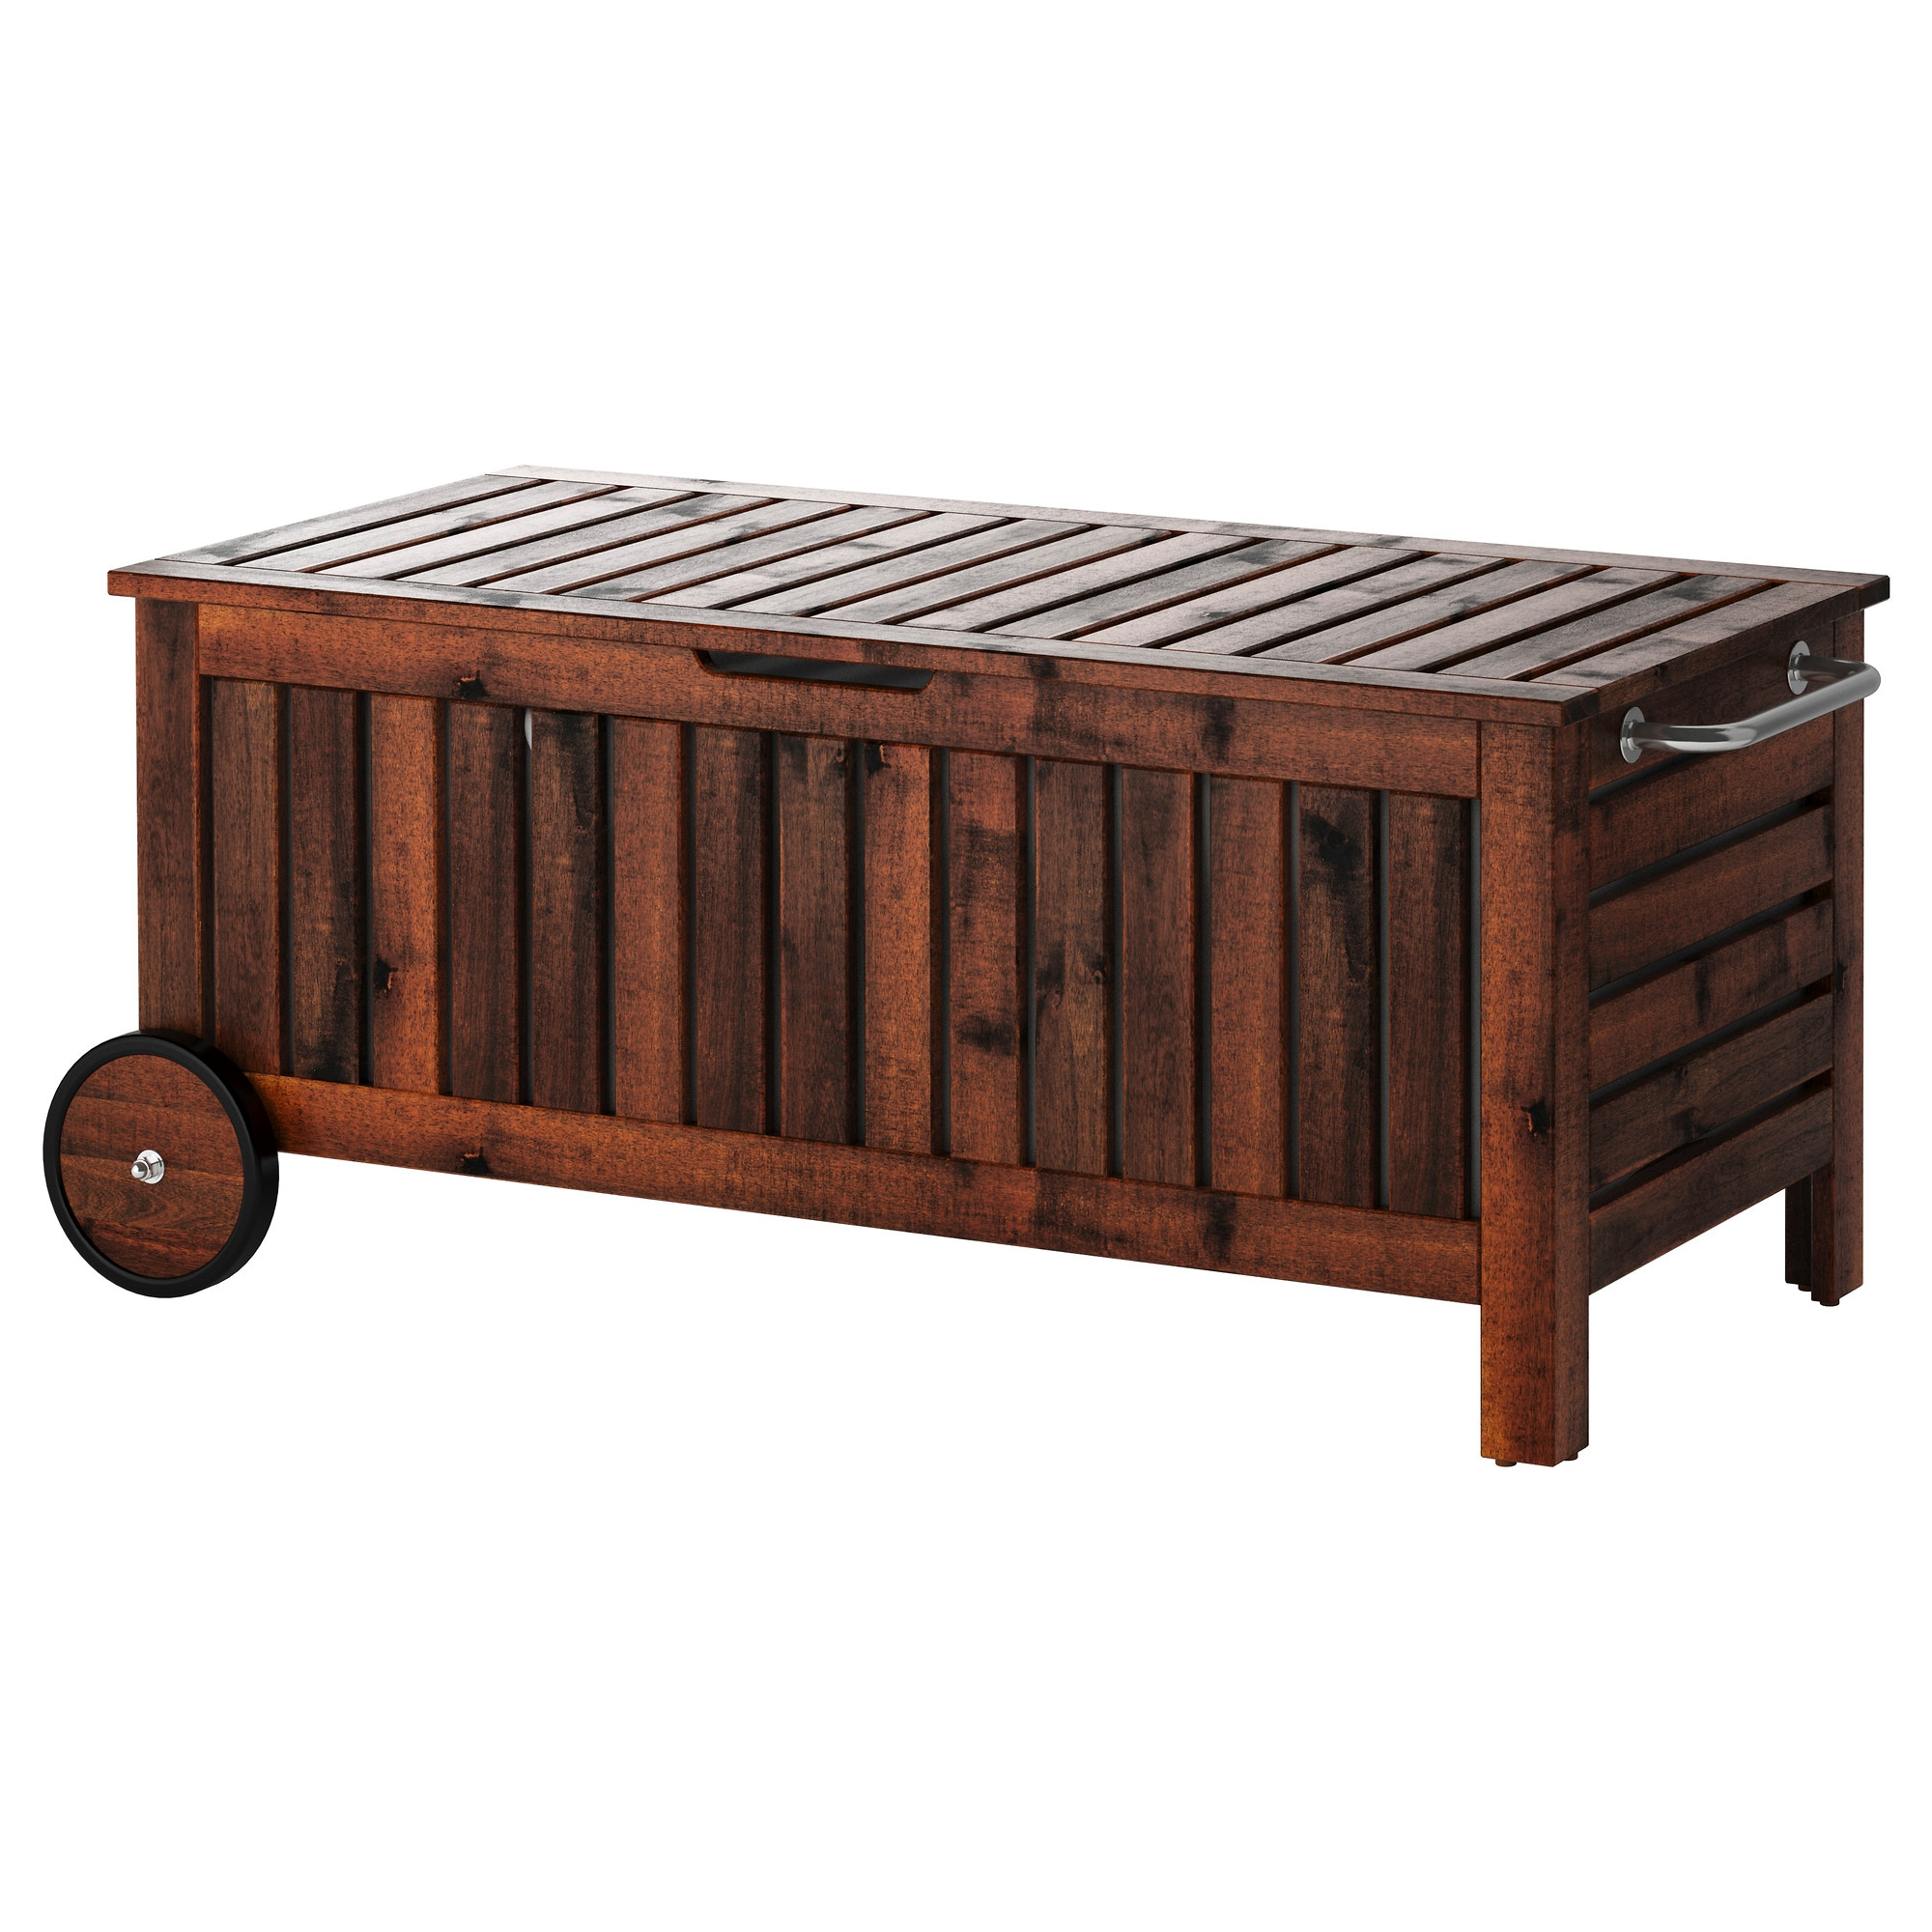 Modern log bench -  Pplar Storage Bench Outdoor Brown Brown Stained Width 50 3 8